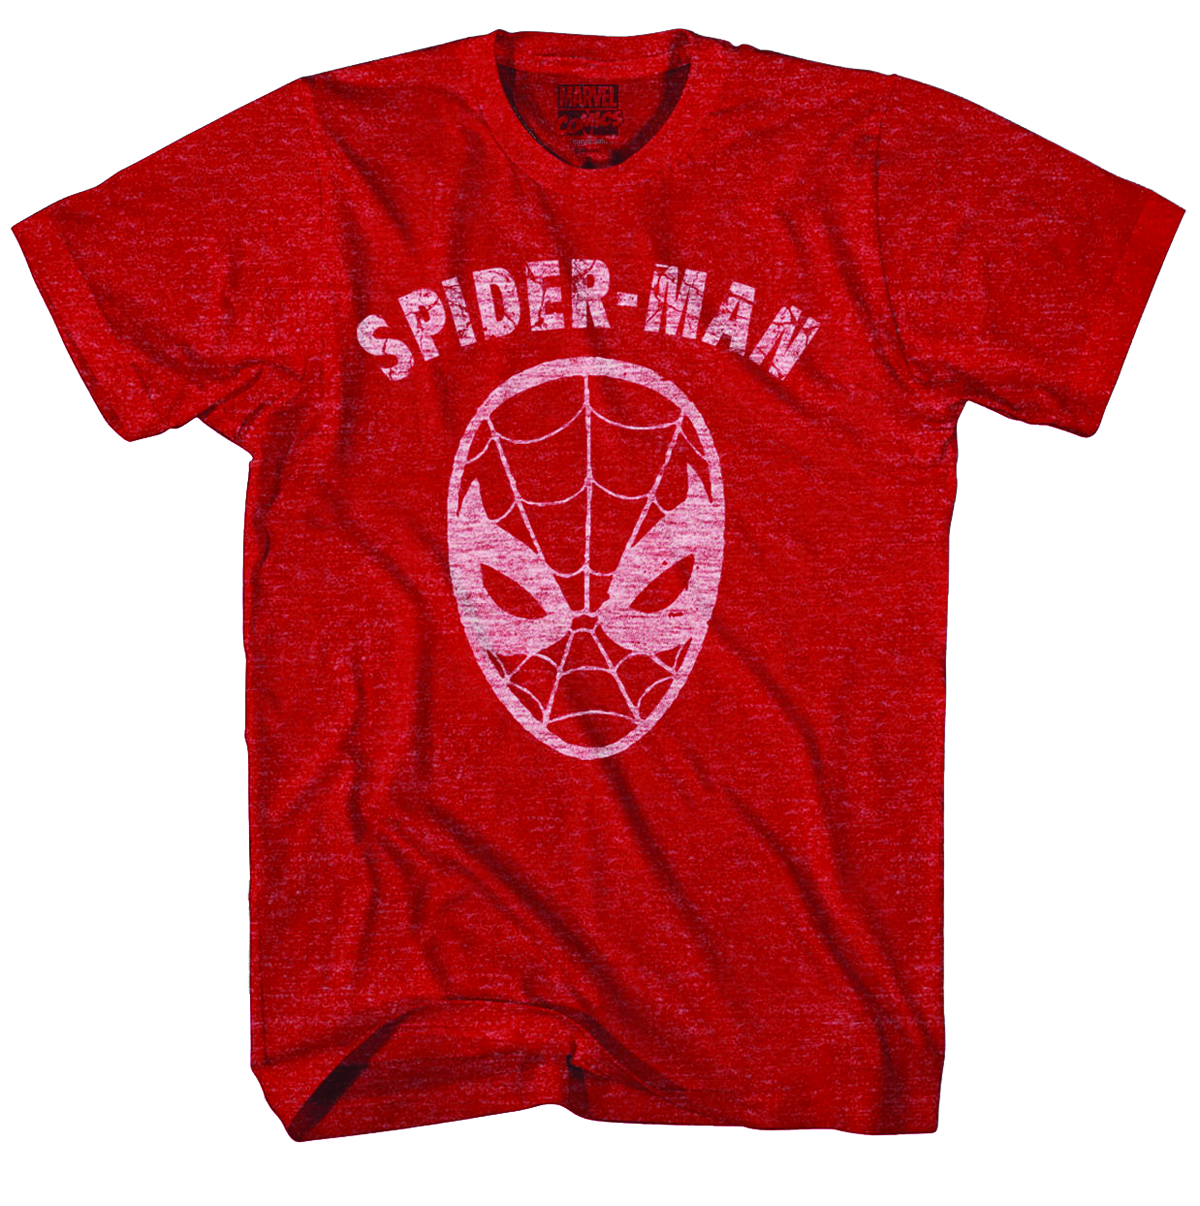 SPIDER-MAN INVERSE ICON PX RED HTHR T/S LG